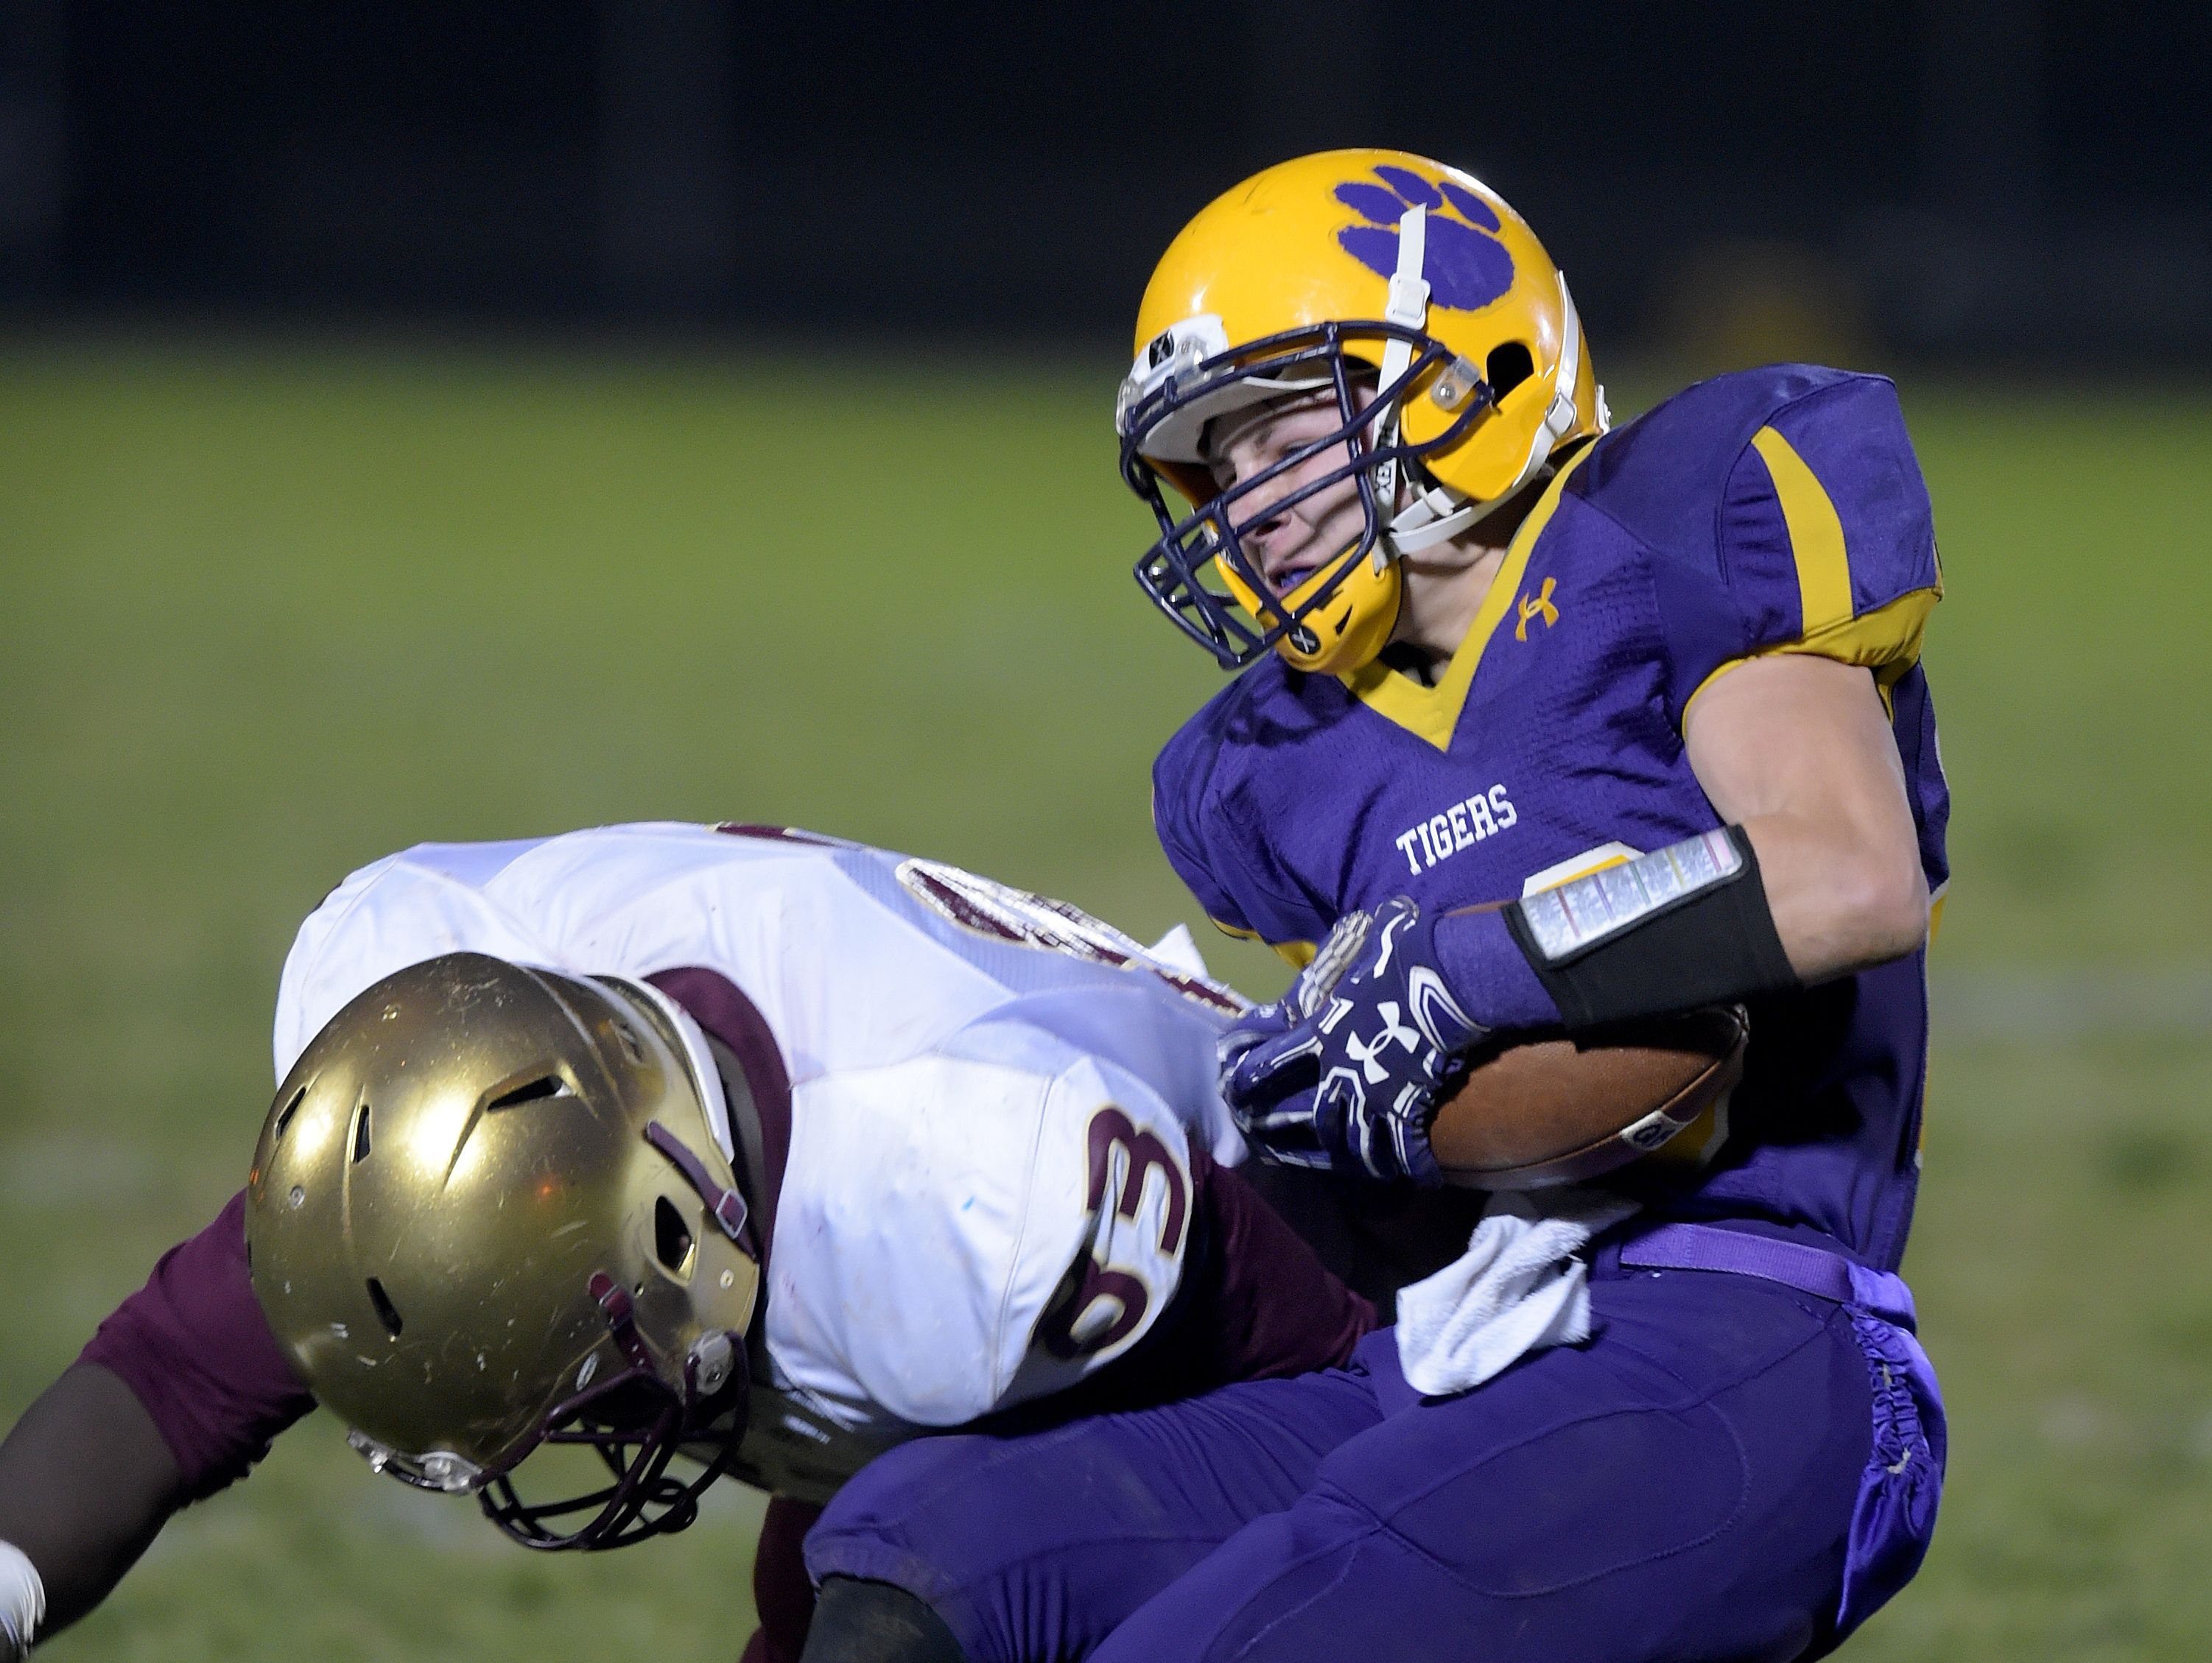 Hagerstown's Brandon Purtha runs the ball against Indianapolis Lutheran's Tyler Johnson during a sectional football game Friday, Nov. 4, 2016 in Hagerstown.